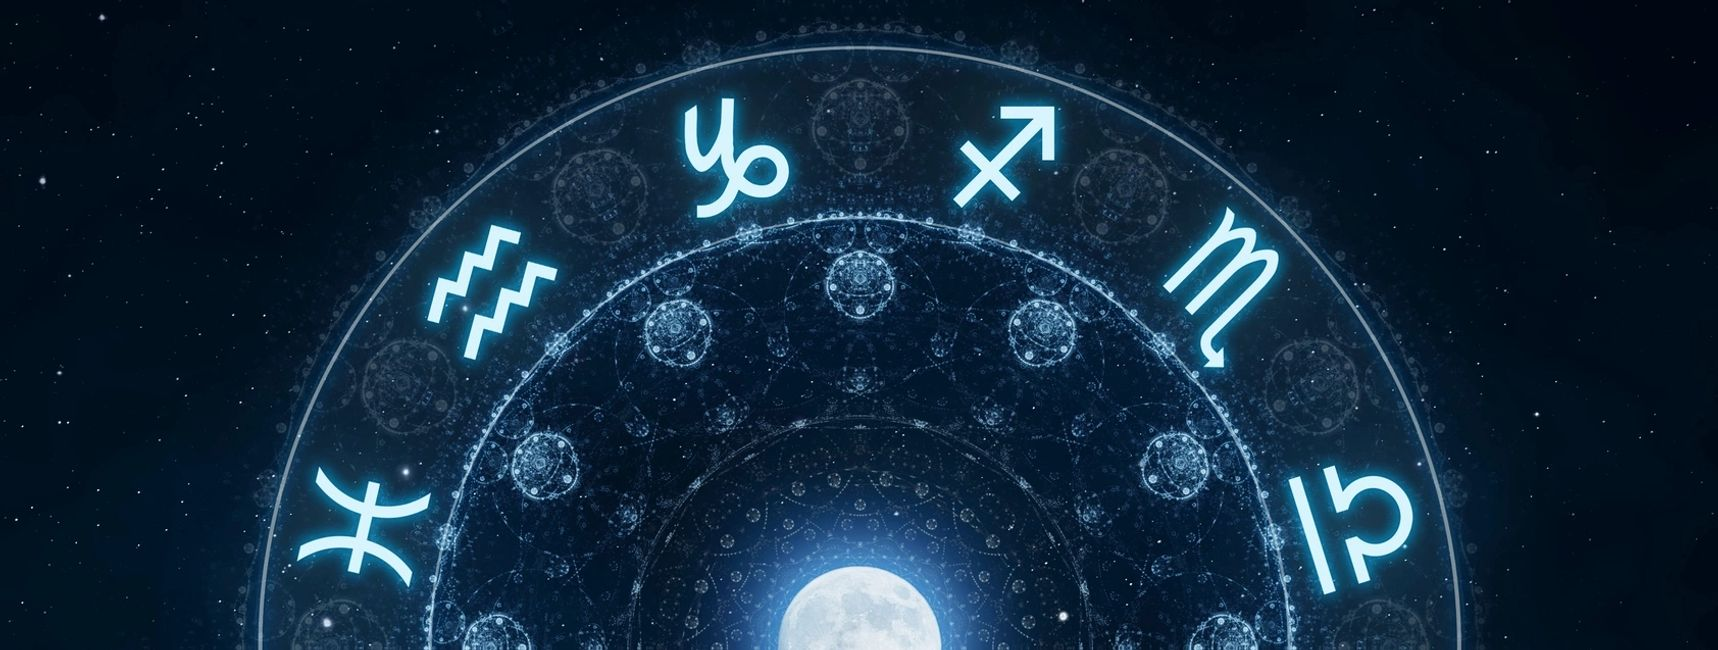 Wheel of signs, Astrology natal chart by Raphael The Worlds Medium, visit www.The-Worlds-Medium.com